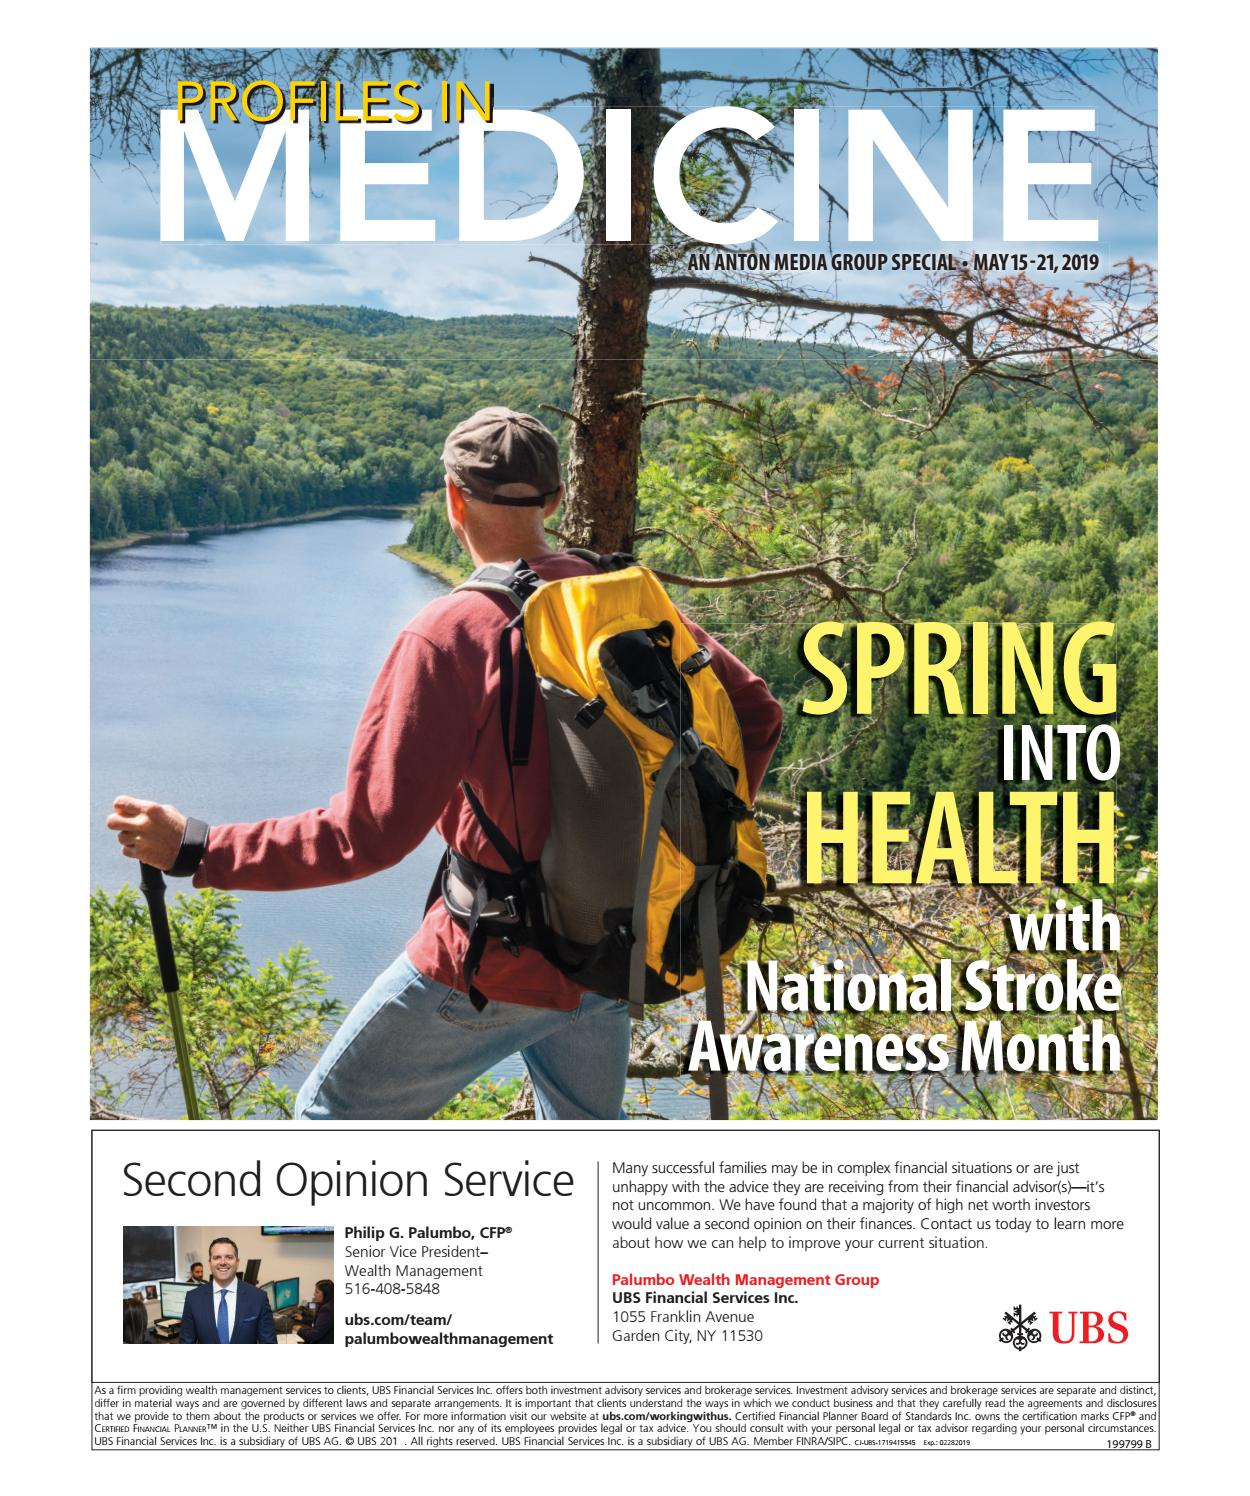 Profiles in Medicine 05-15-19 by Anton Community Newspapers